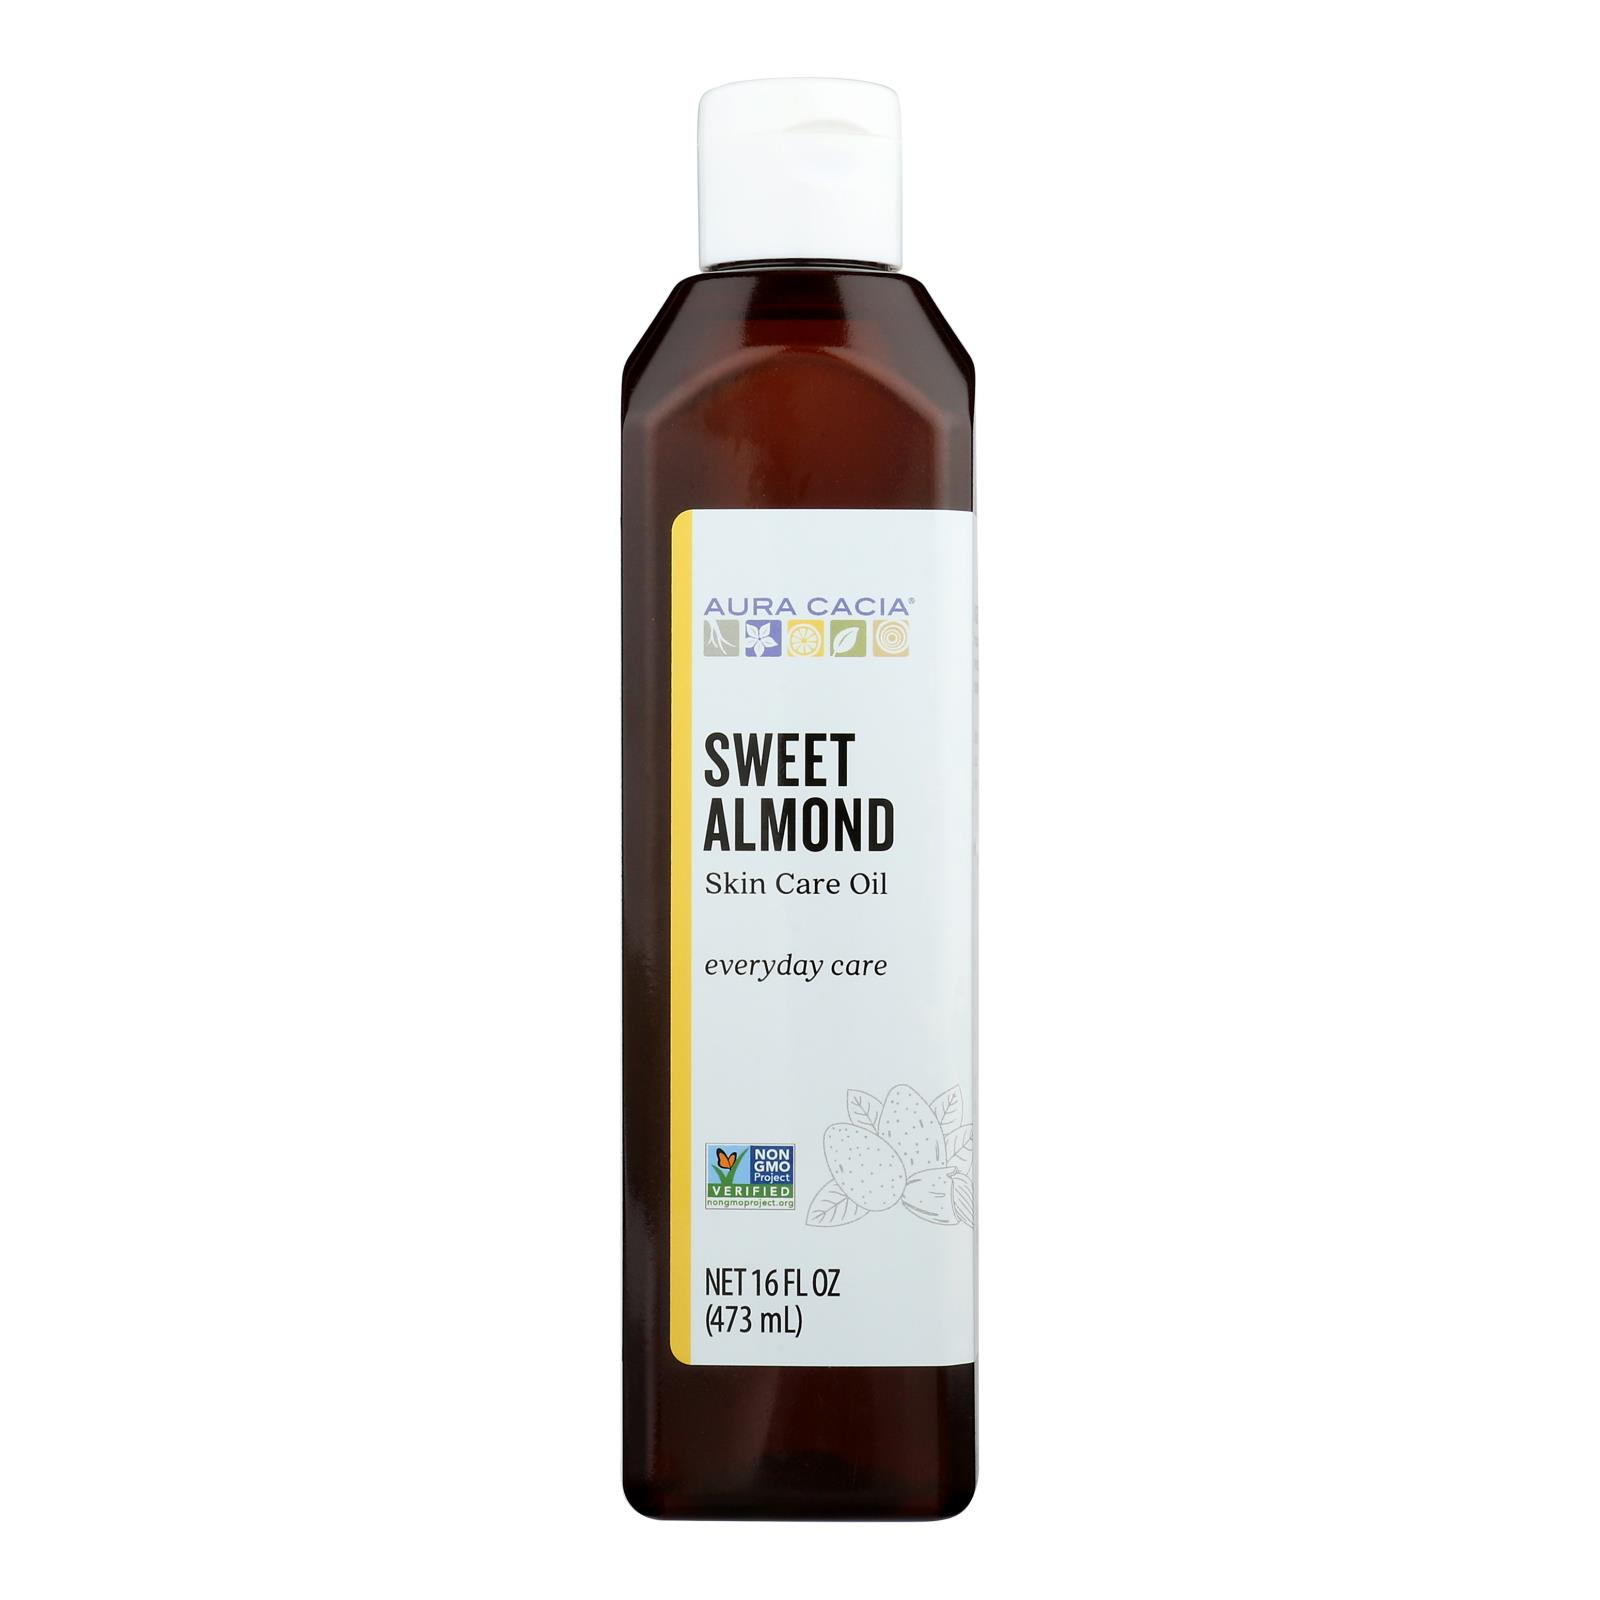 Aura Cacia - Aura Cacia Natural Skin Care Oil Sweet Almond -